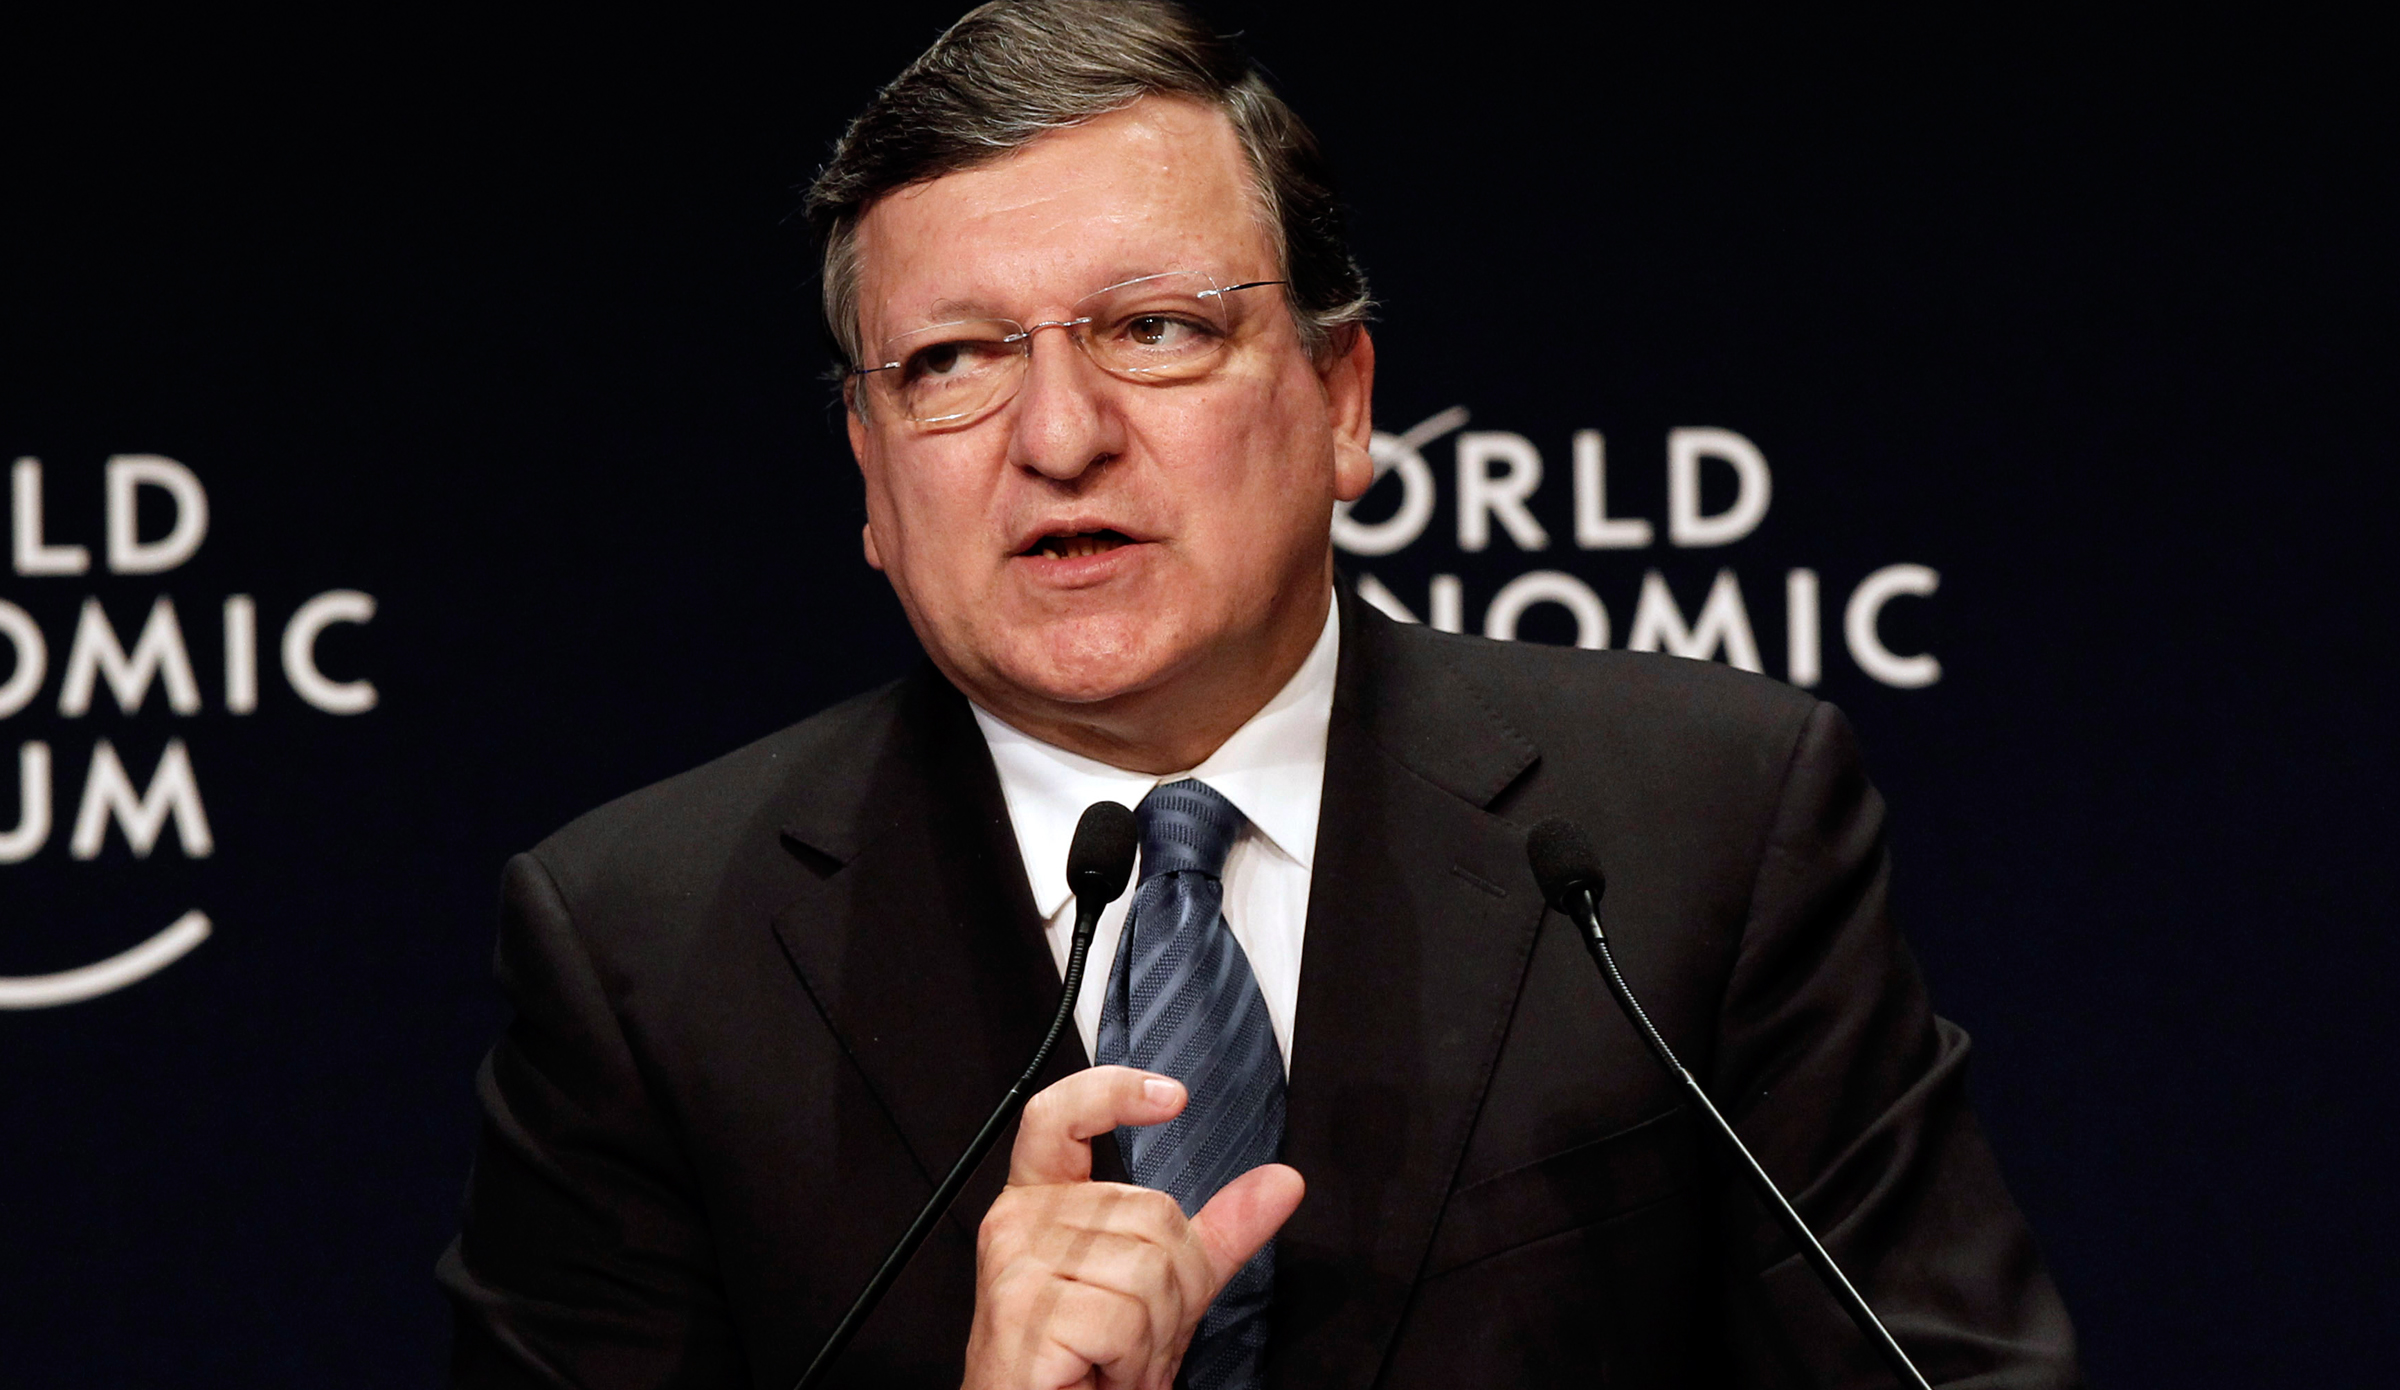 European Commission President Jose Manuel Barroso speaks during the World Economic Forum Special Meeting on Unlocking Resources for Regional Development in Istanbul